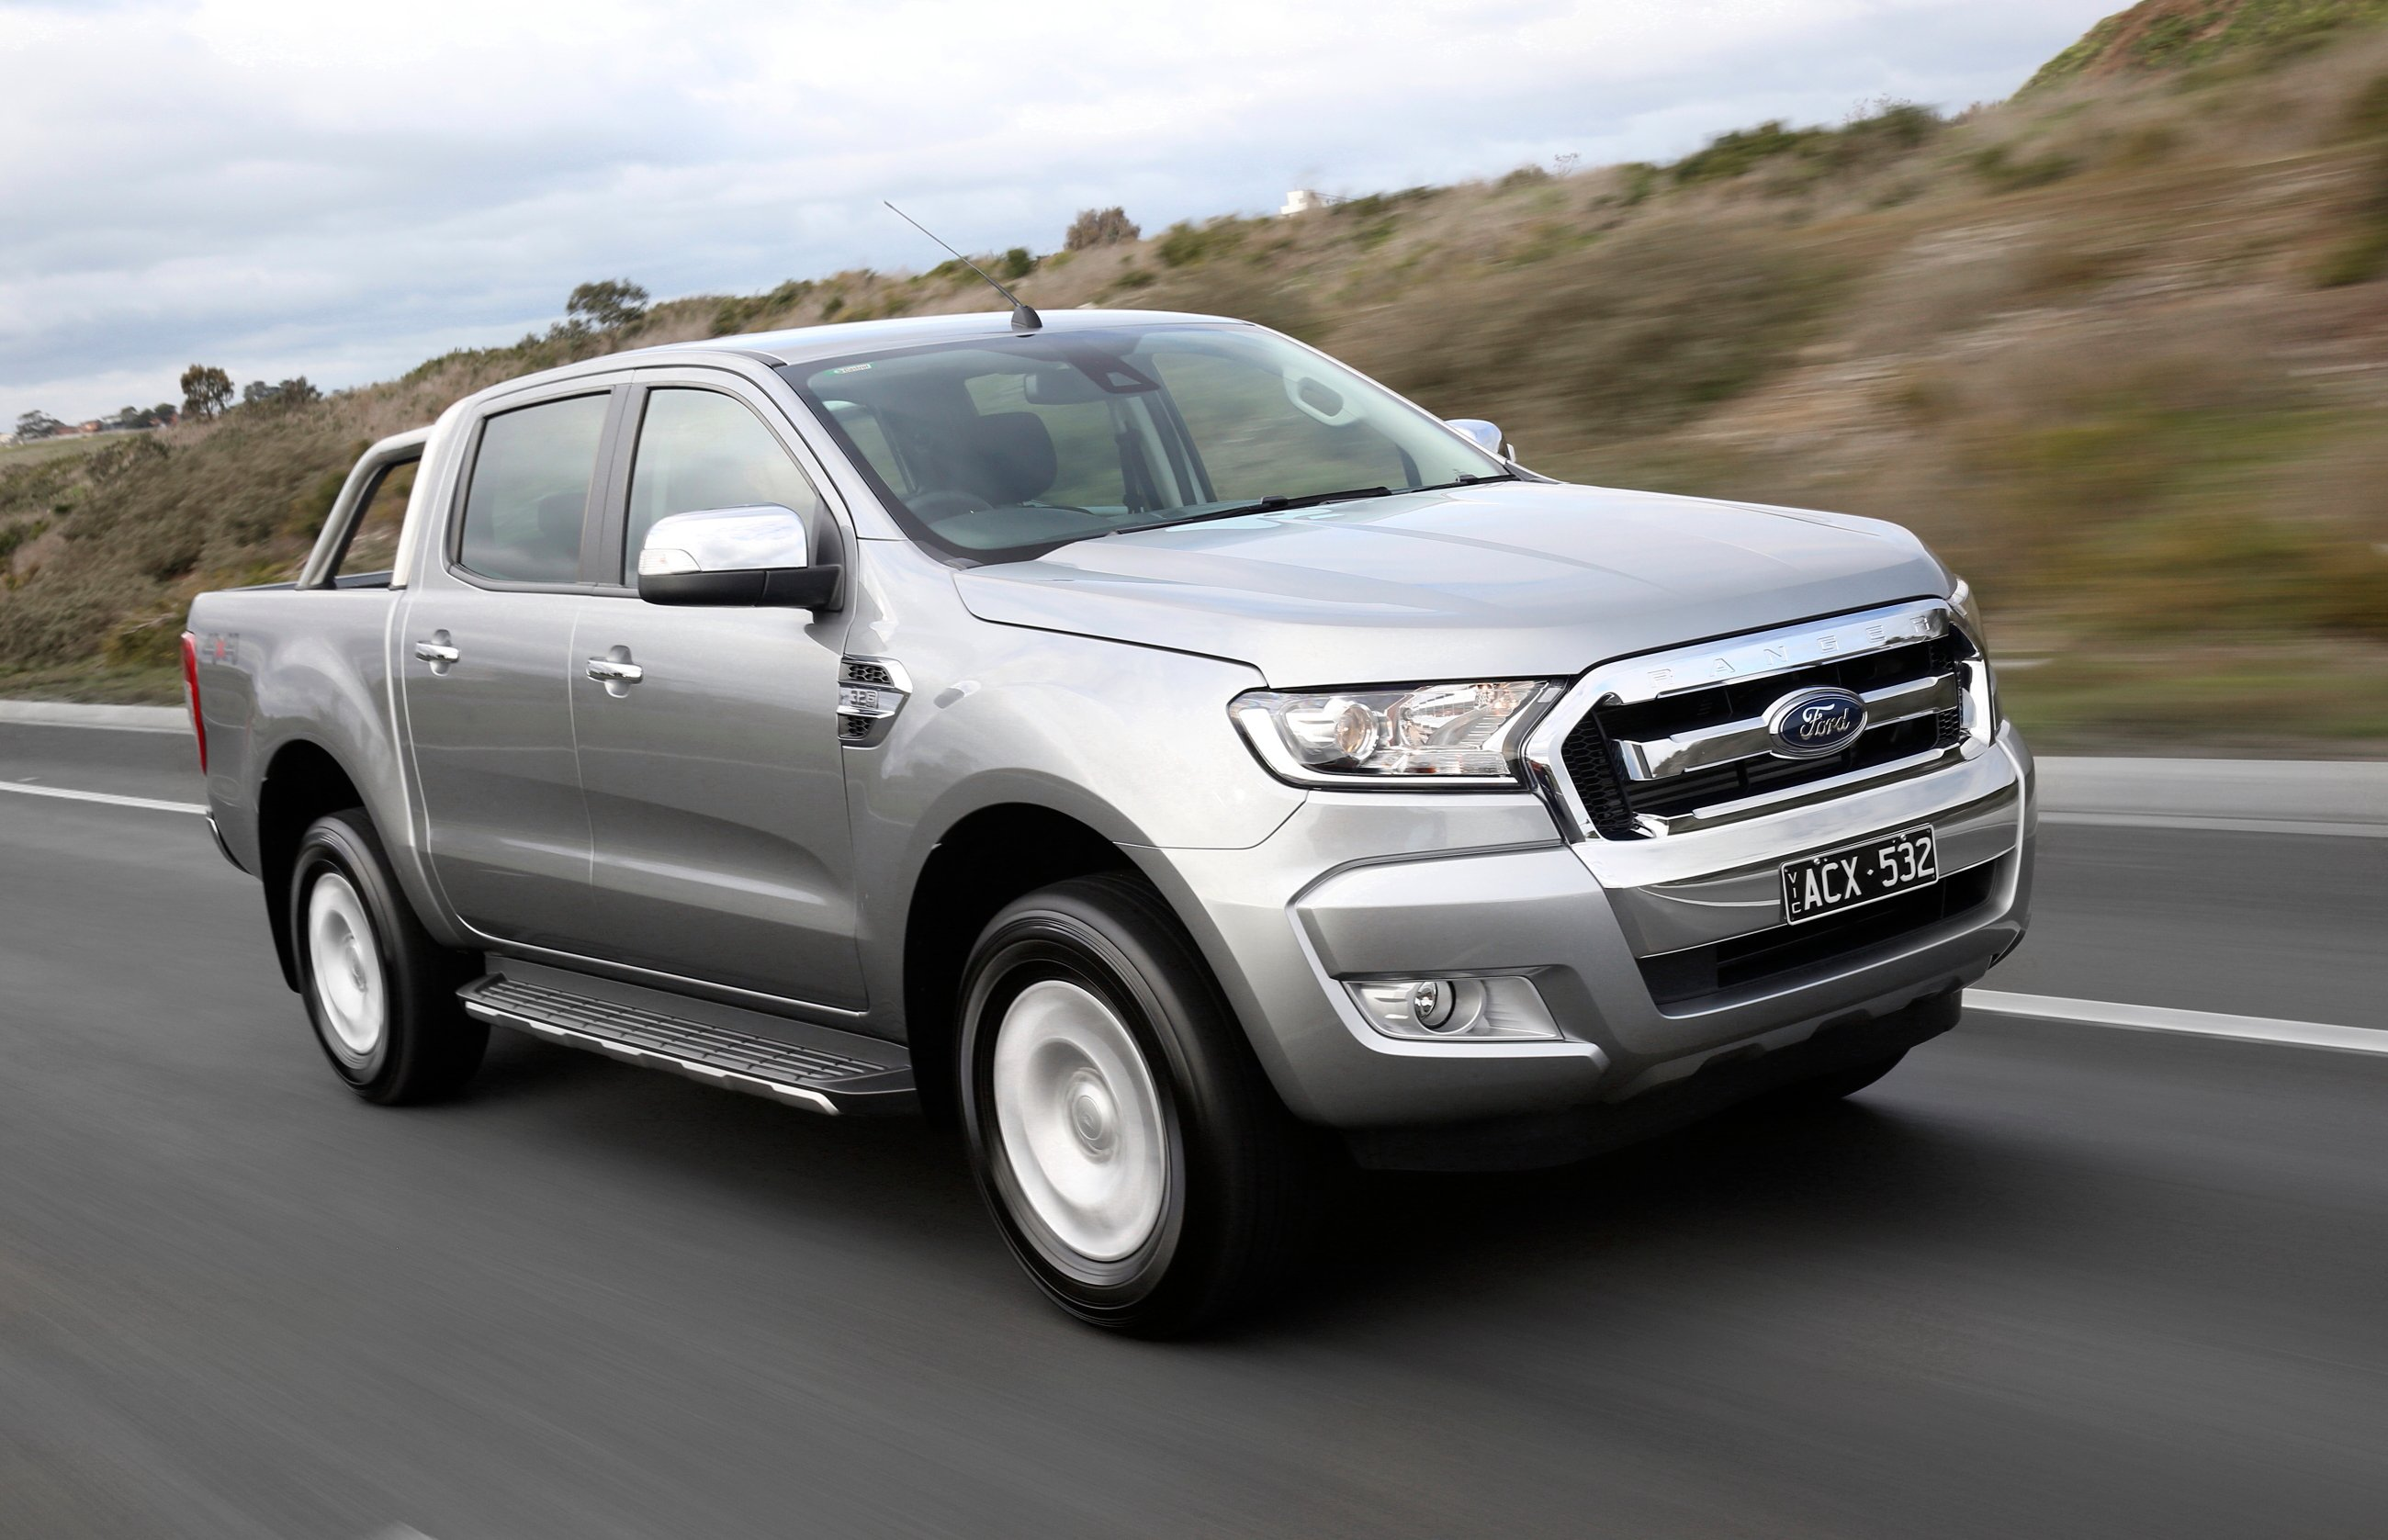 """2016 Ford Ranger launches : """"Illogical"""" not to expect sales growth, Blue Oval says - photos ..."""